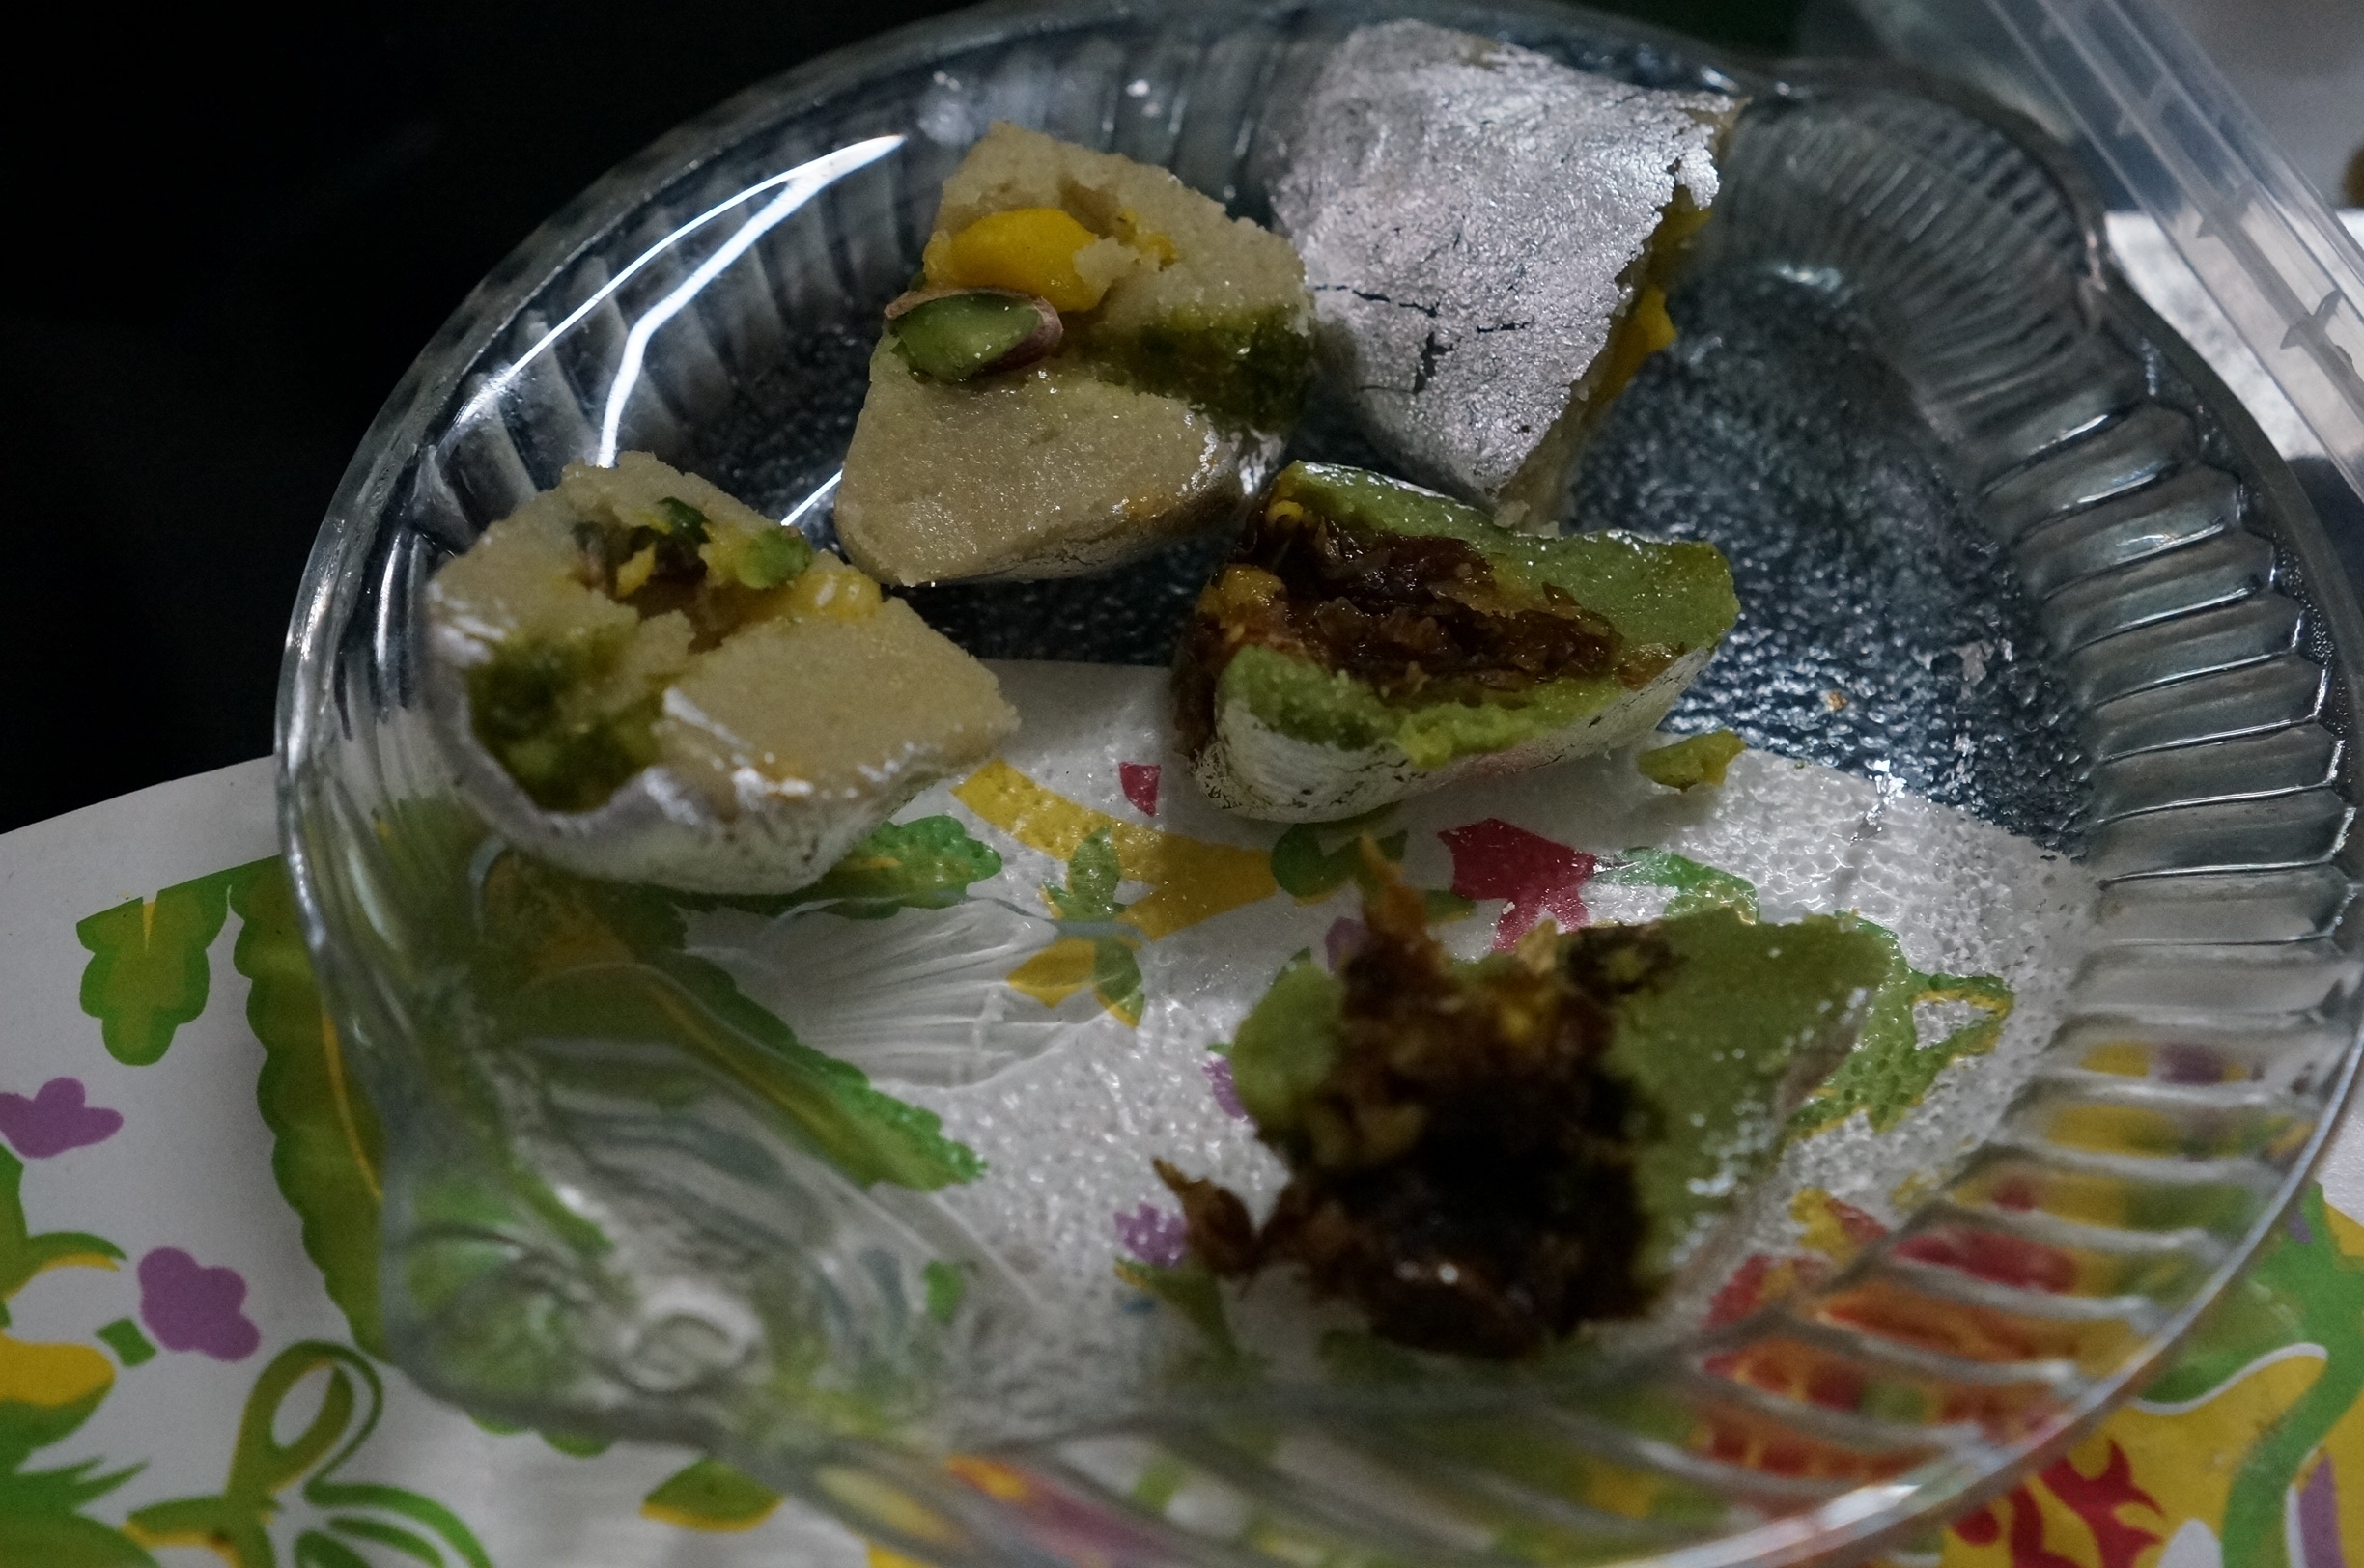 Not sure what is this one call exactly but it's a kind of dessert made from pistachios stuffed with some kind of refreshments and covered with vark which is edible silver.